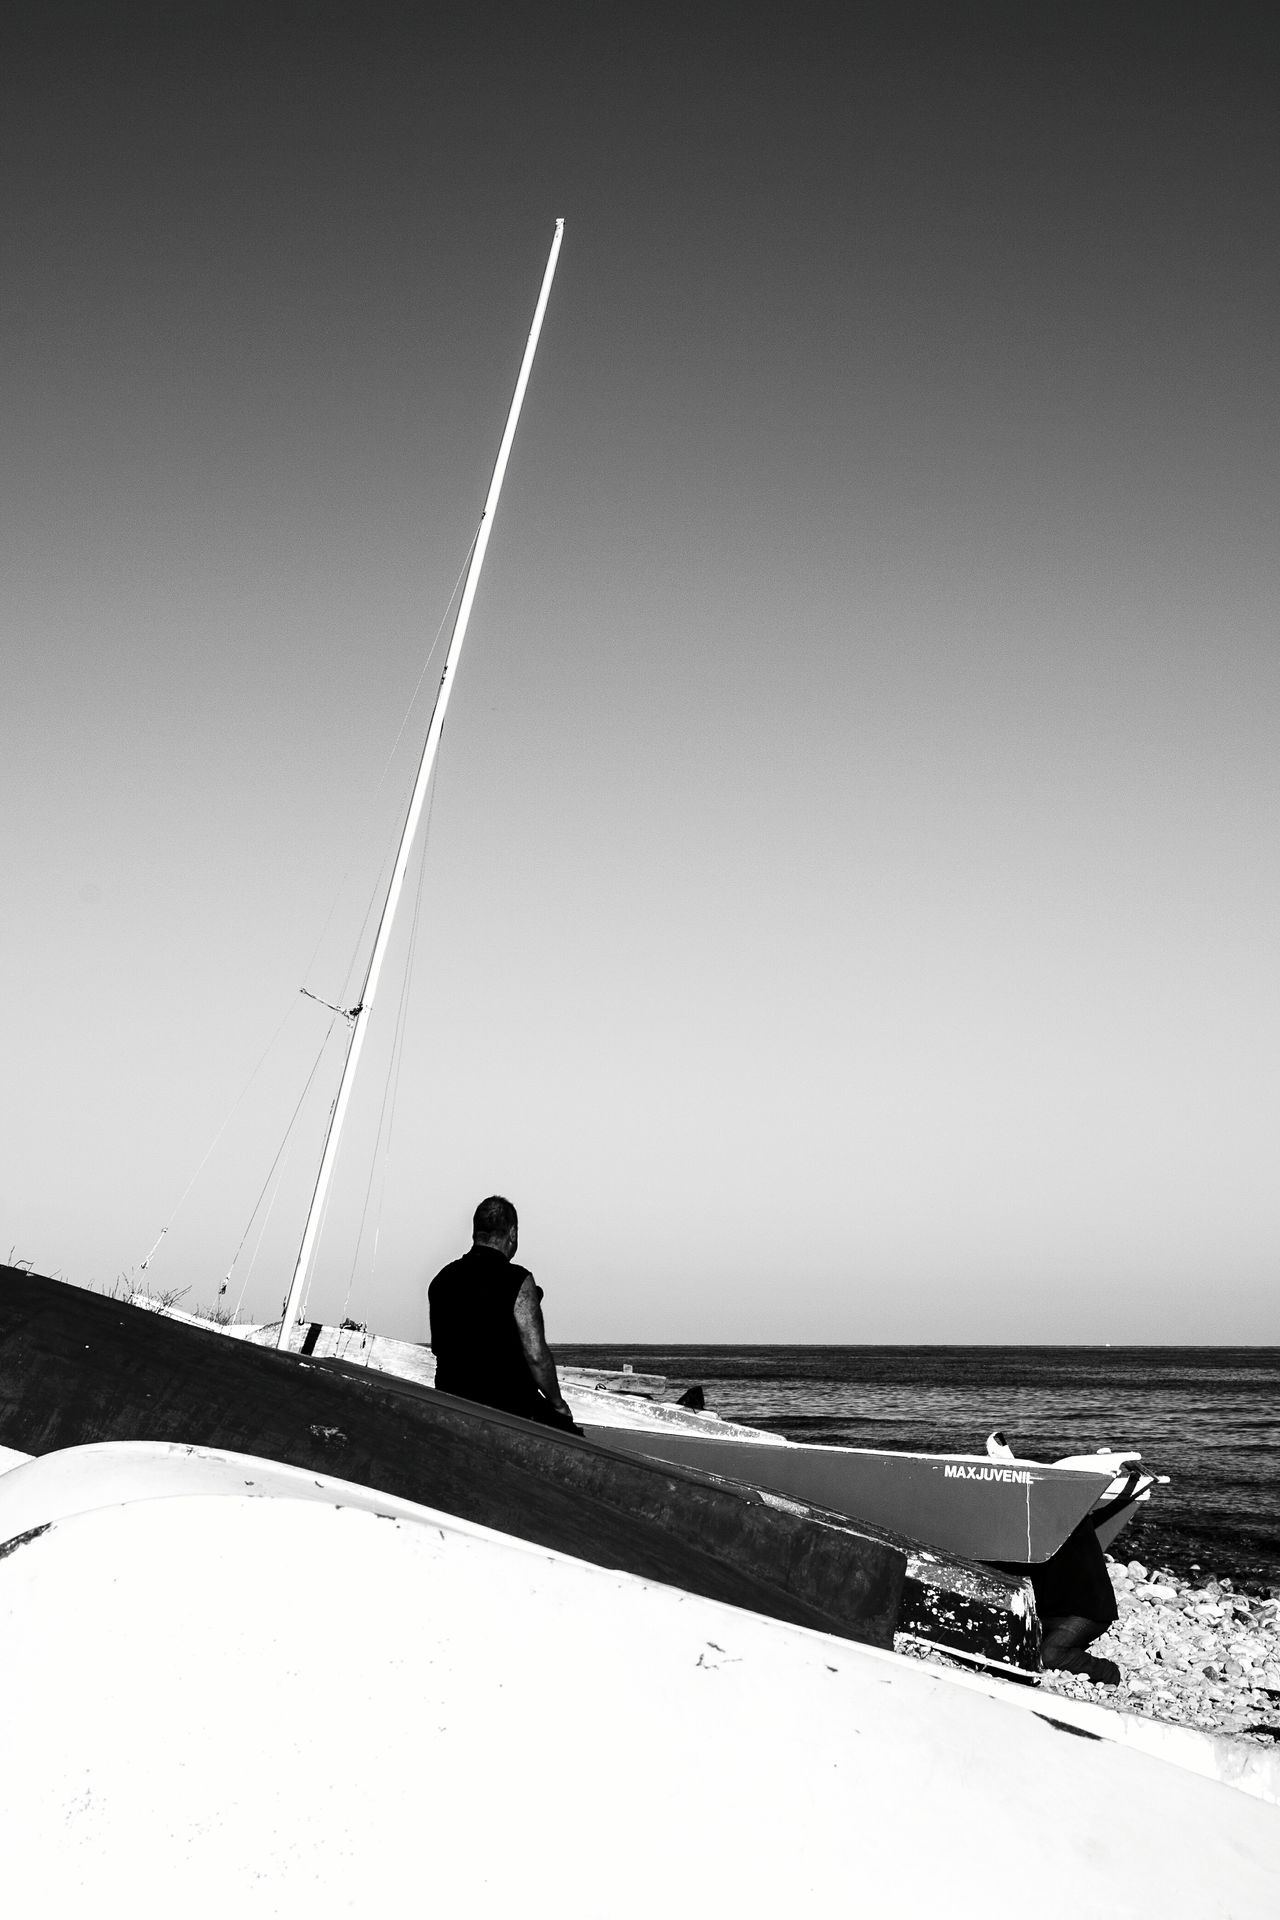 One Person Outdoors Silhouette One Man Only Real People Photography Themes Vapor Trail Sky Water Horizon Over Sea Tranquility Blackandwhite Photography El Campello Travel Destinations Monochrome Photography Horizon Over Water Nautical Sign Transportation Industrial Ship Ship At Sea Ships At Sea Nautical Fishermenboat FisherMens SailorMars